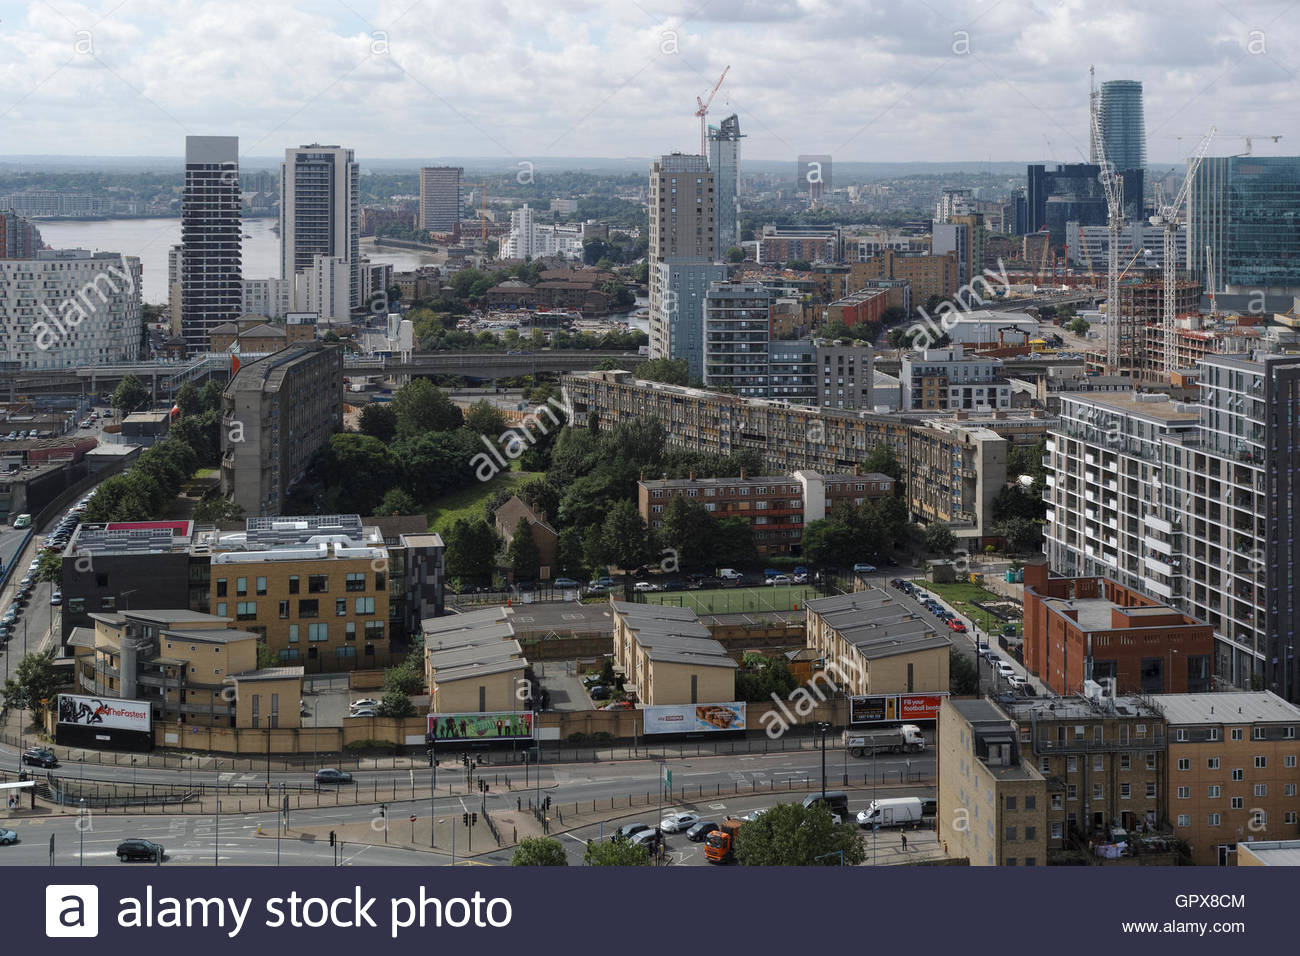 Birds eye view of Robin Hood Gardens housing estate: Poplar, London.Stock Photo